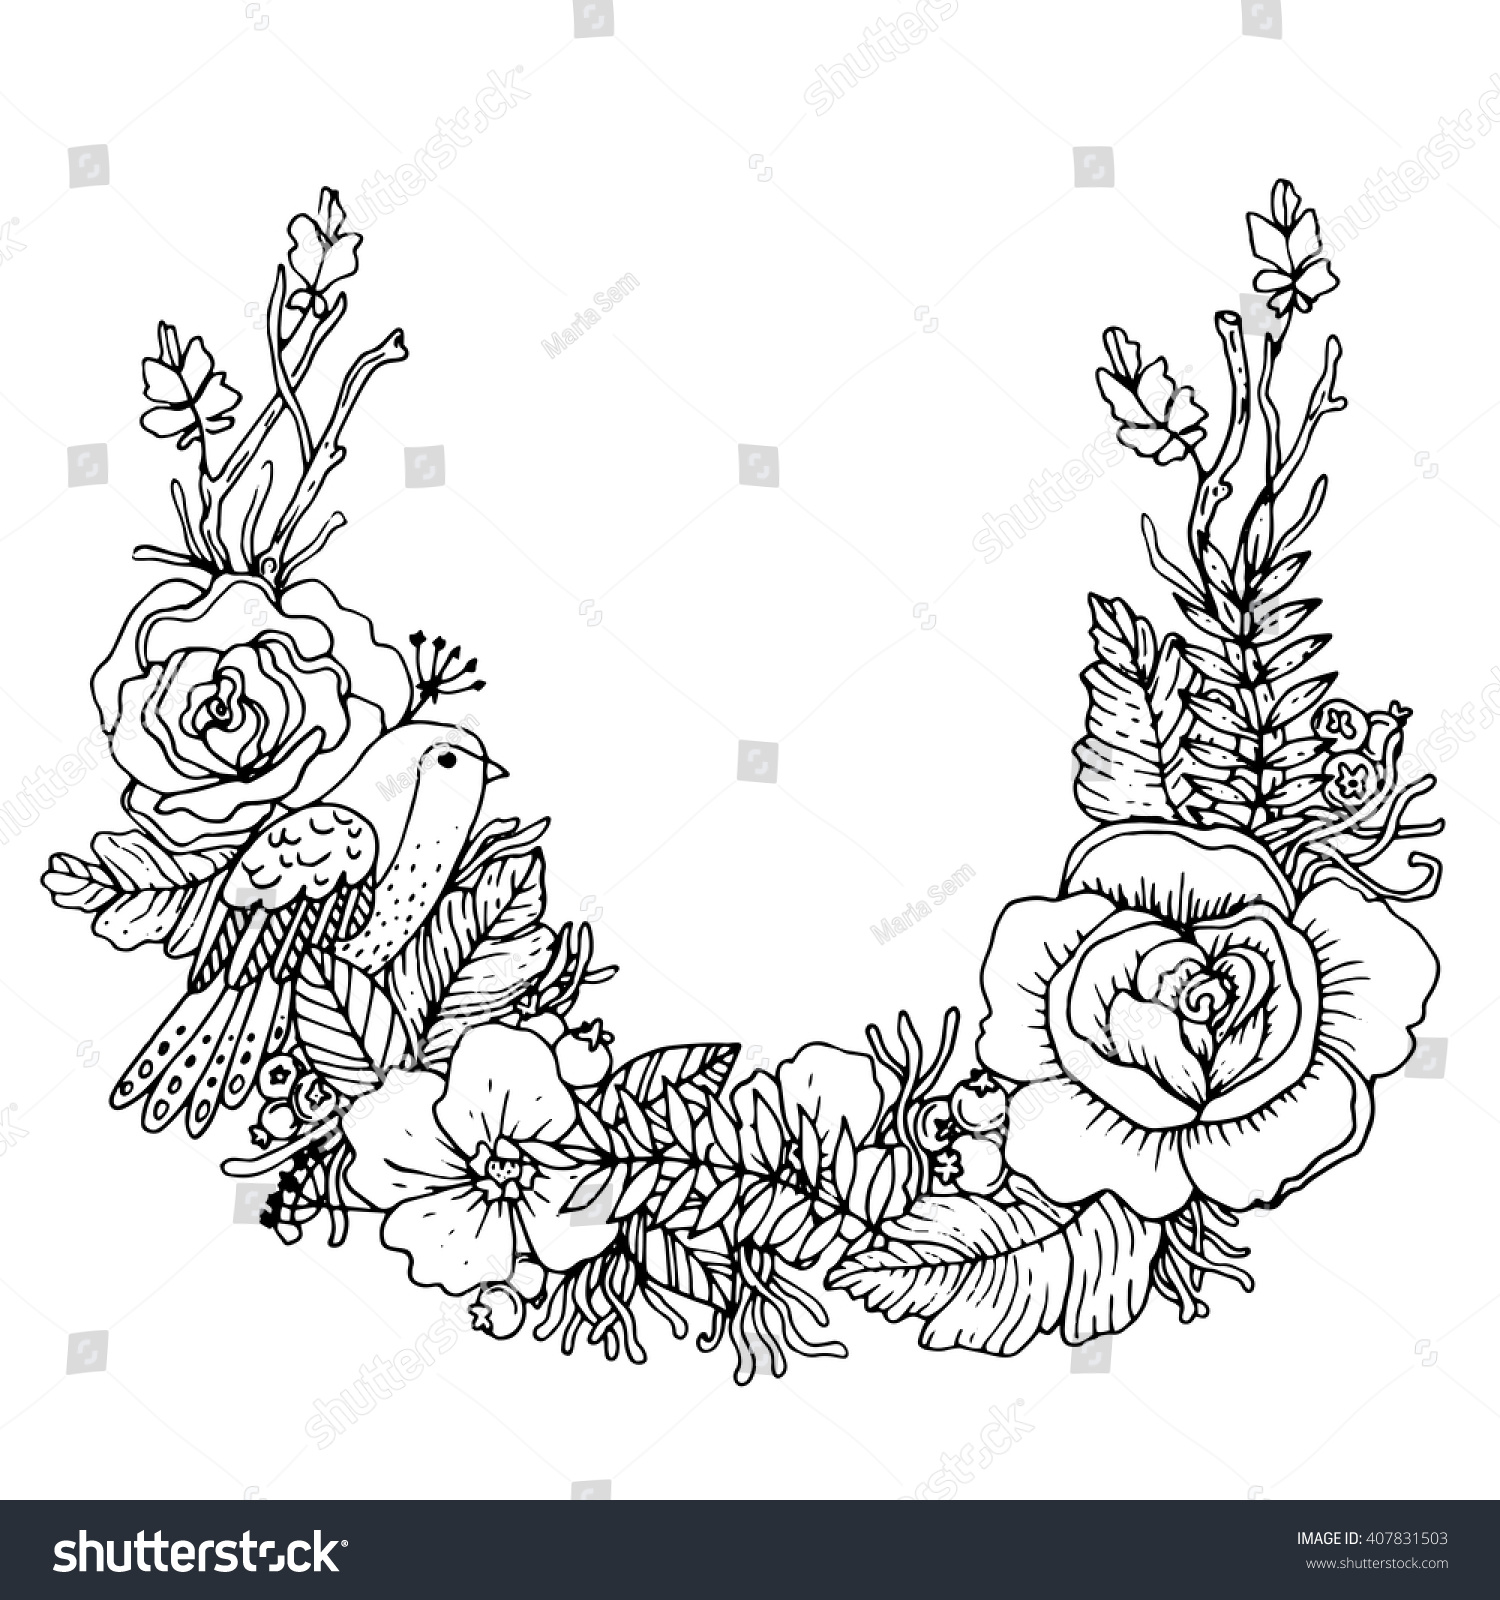 Botanical art coloring book - Beautiful Botanical Wreath With Bird And Flowers Perfect For Invitations Cards Posters Or